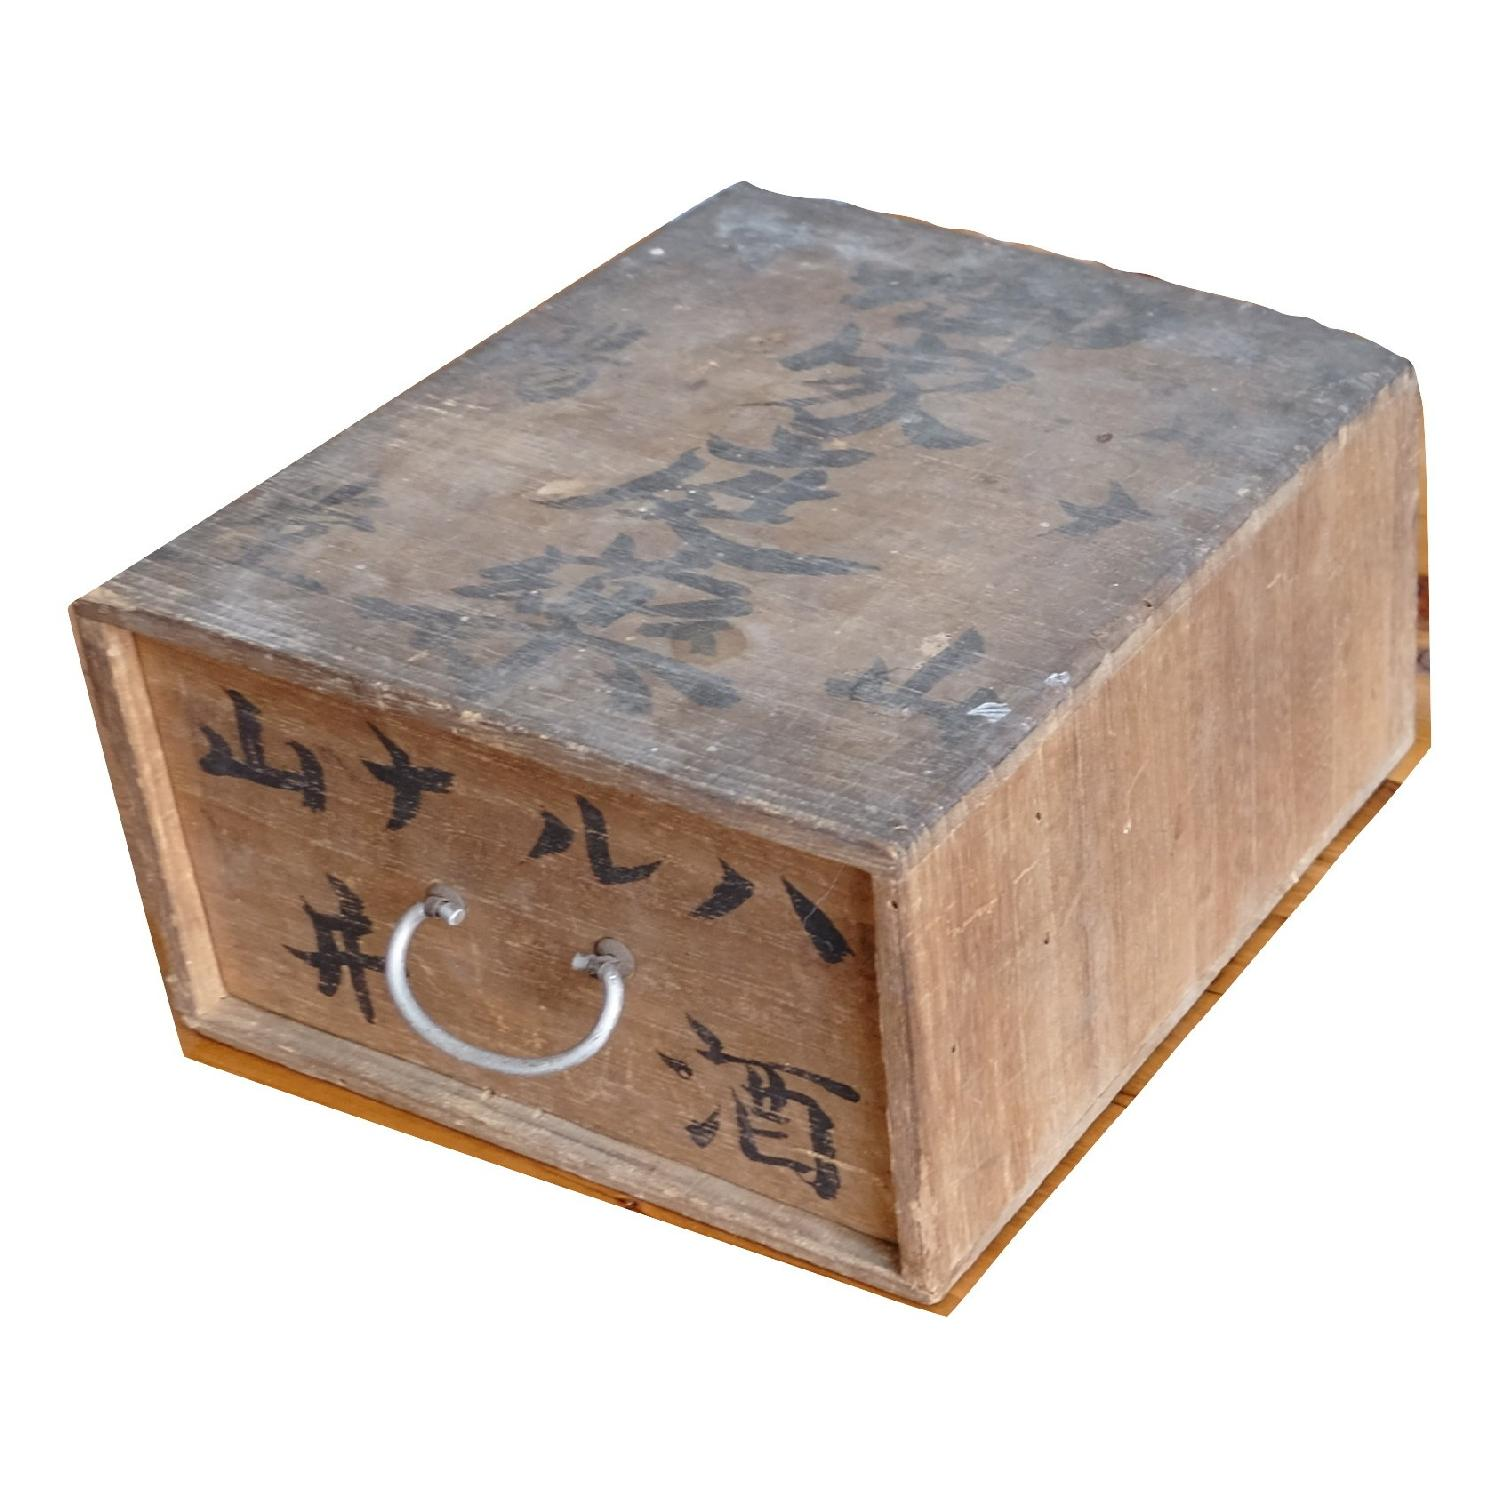 Vintage Japanese Wood Kusuribako Medicine Box